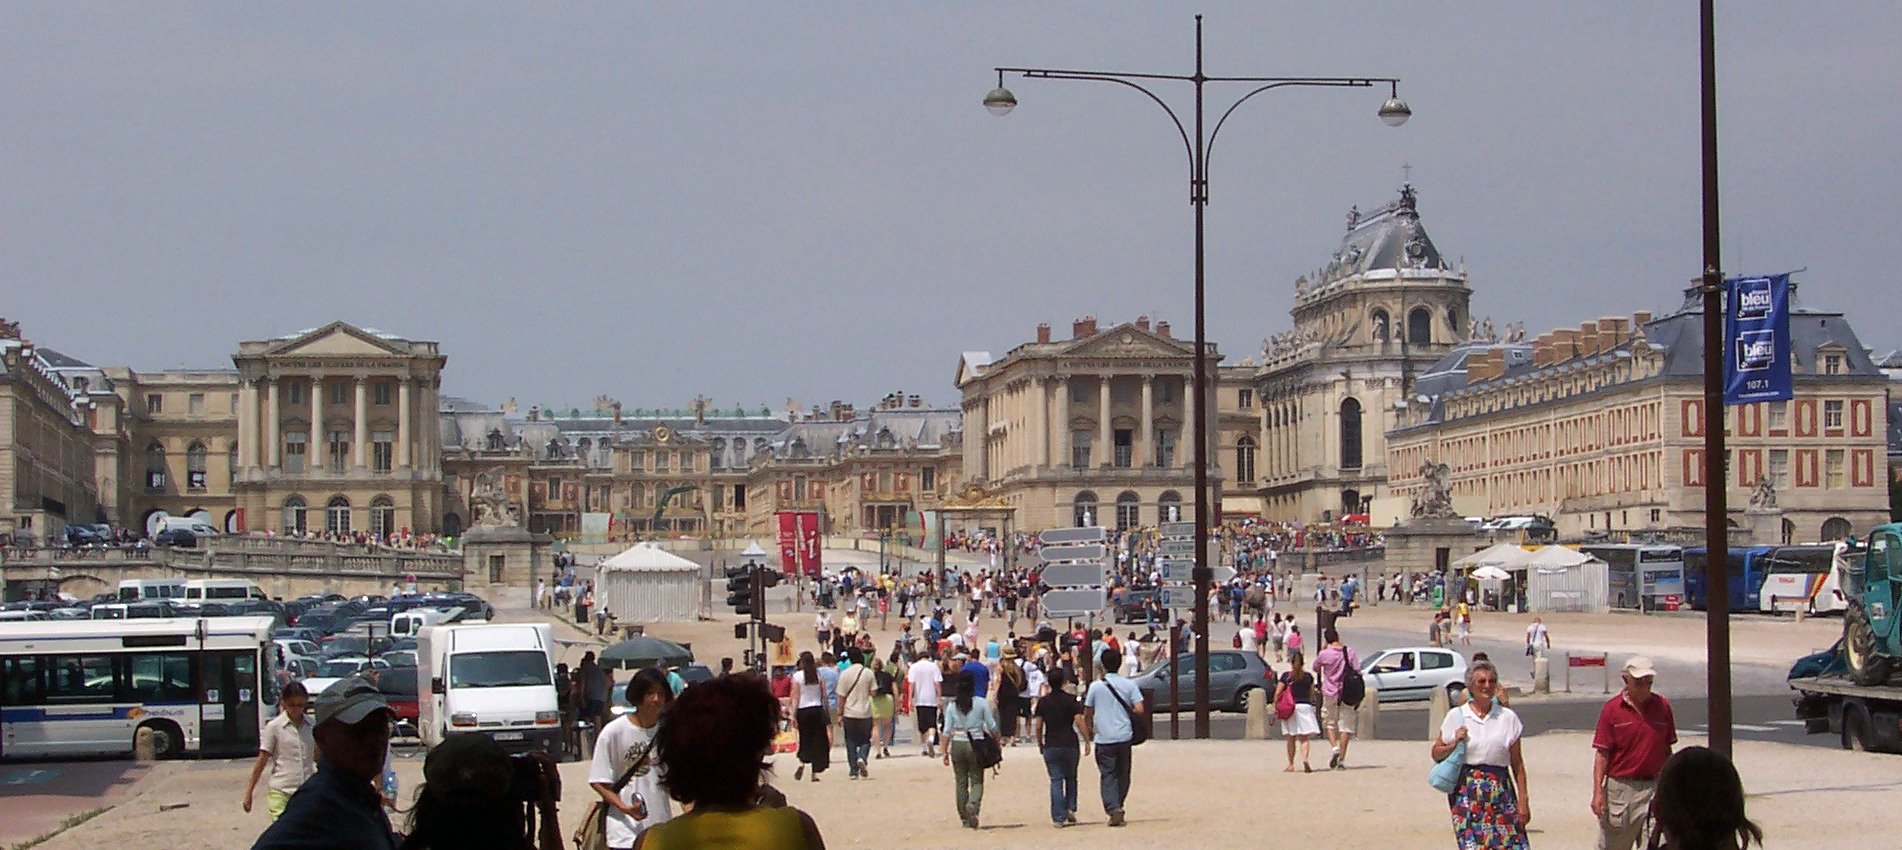 Palace of Versailles Front View